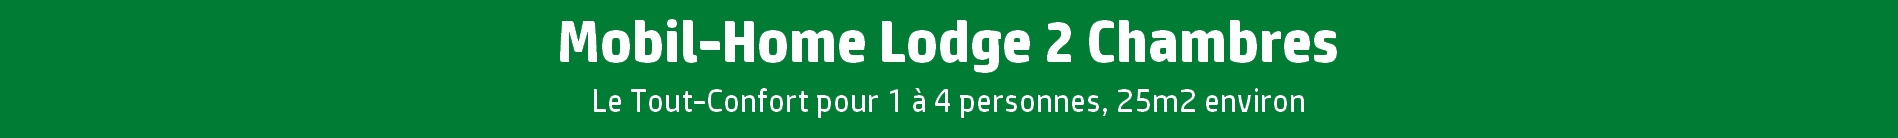 Mobile Home Lodge 2 Chambres